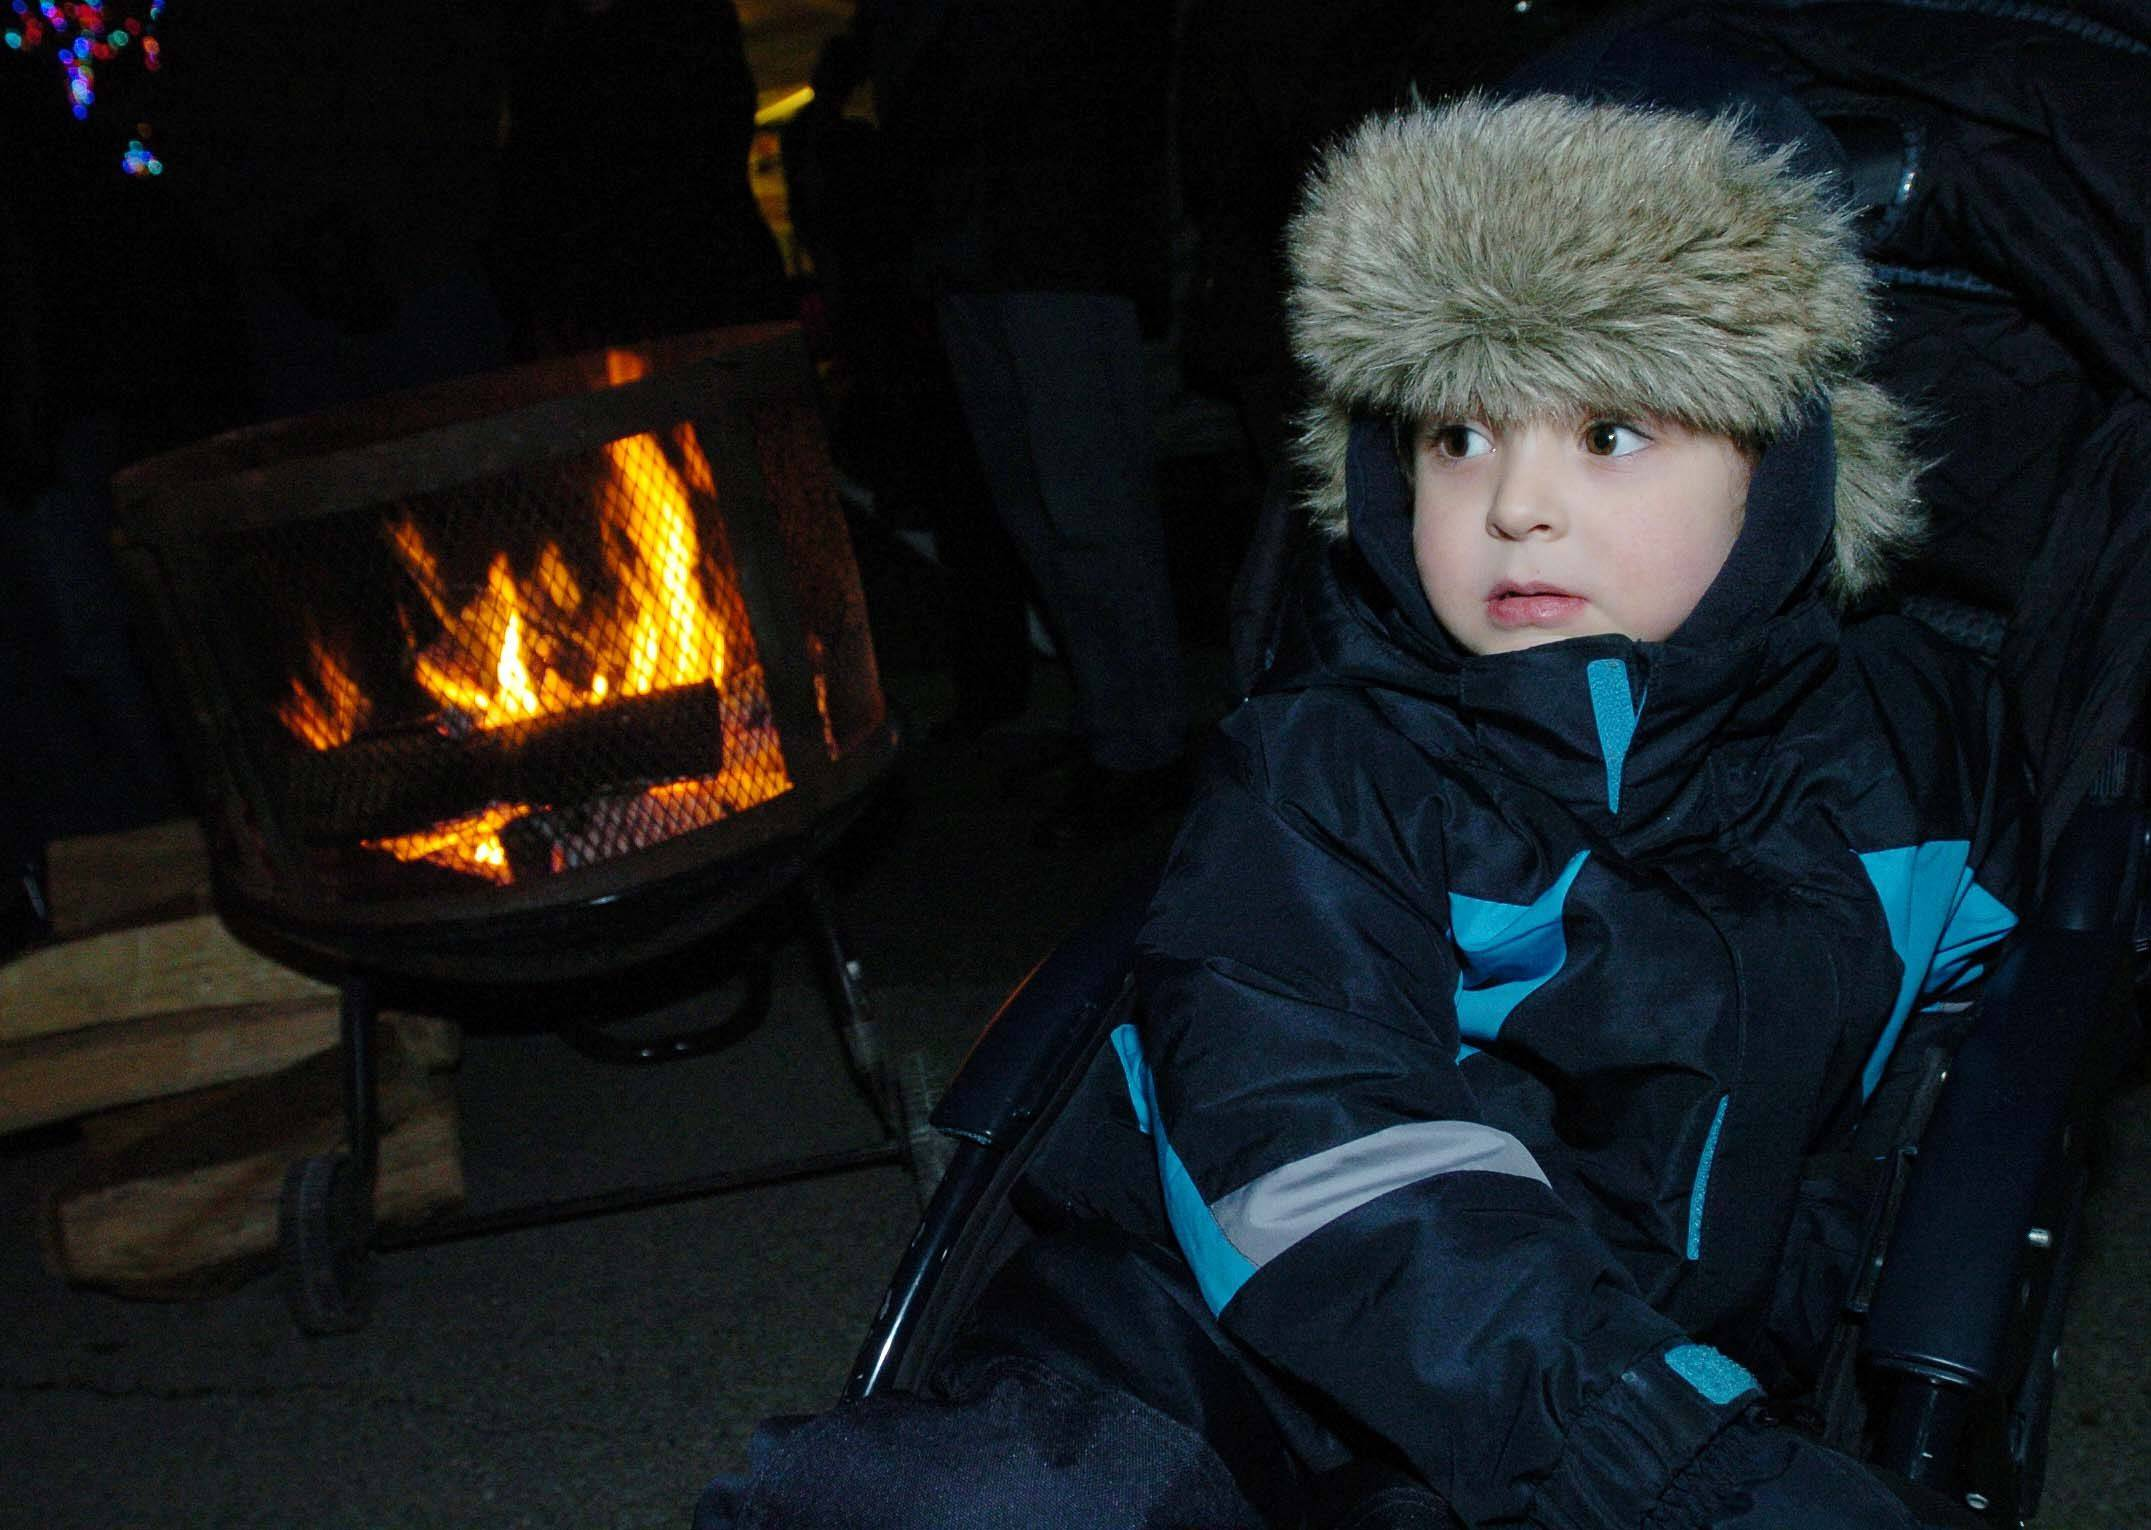 John Ogan,4, of Warrenville keeps warm by the fire while waiting for Santa to show during Holly Days in Warrenville Friday.